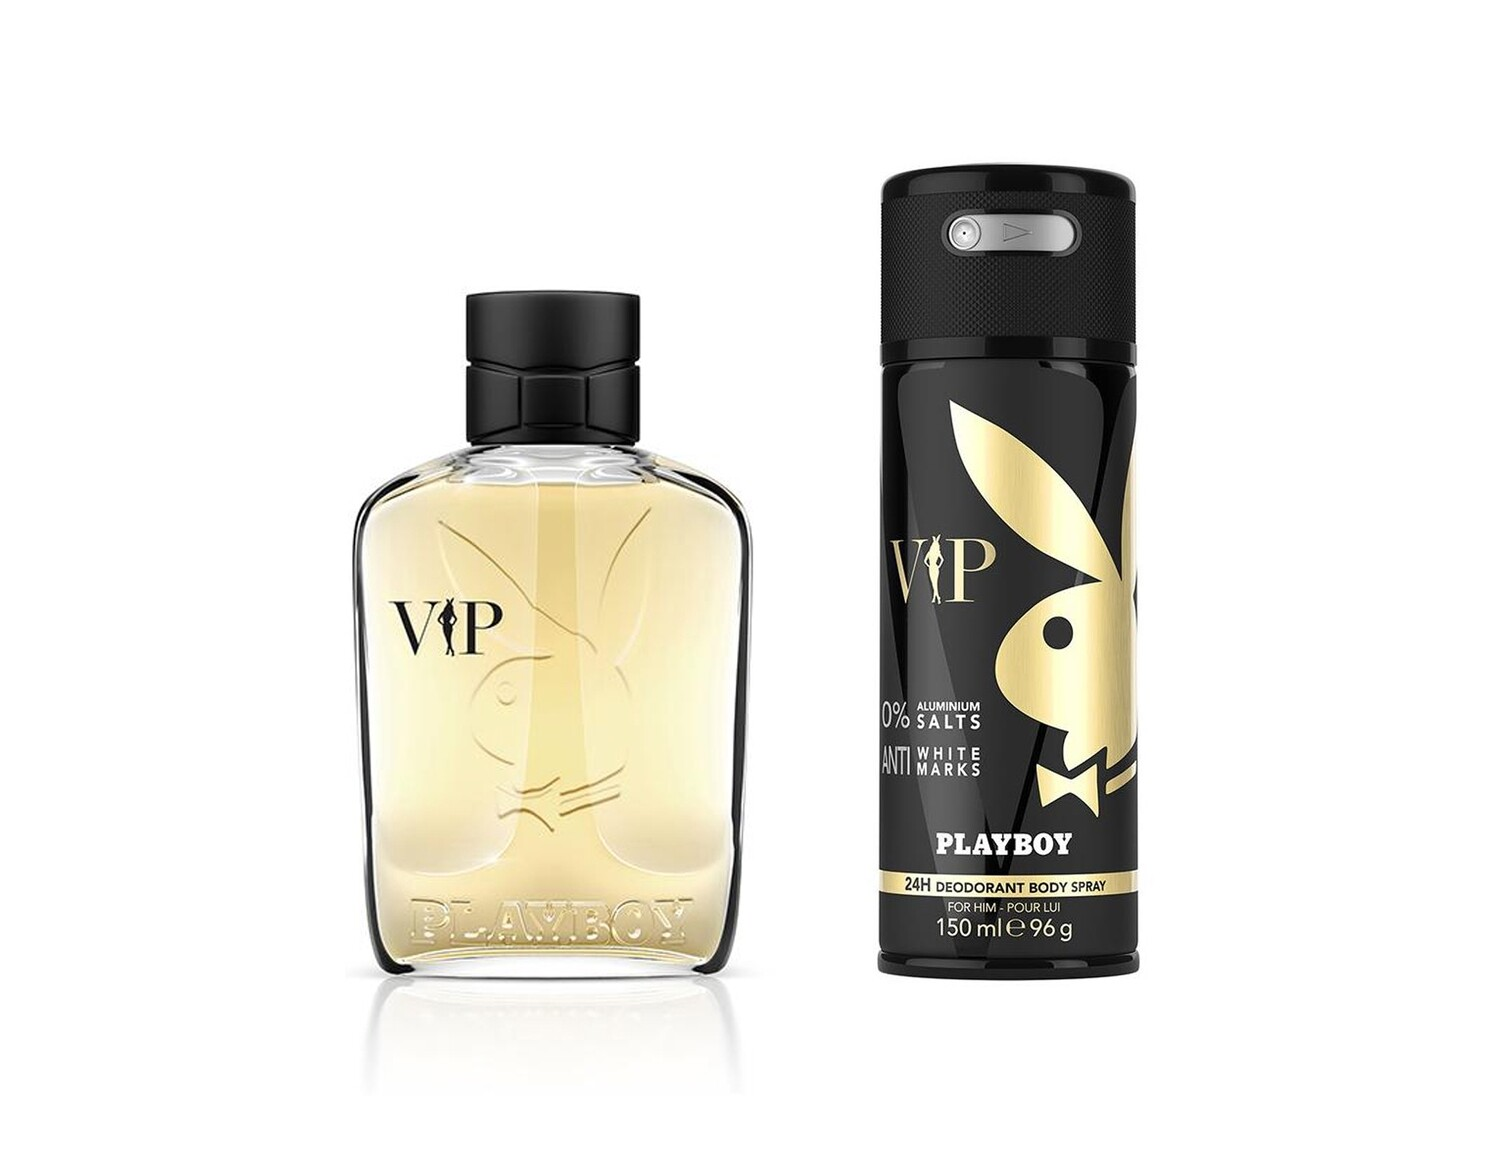 Playboy VIP For Men Eau de Toilette 100ml  +  Body Spray 150ml